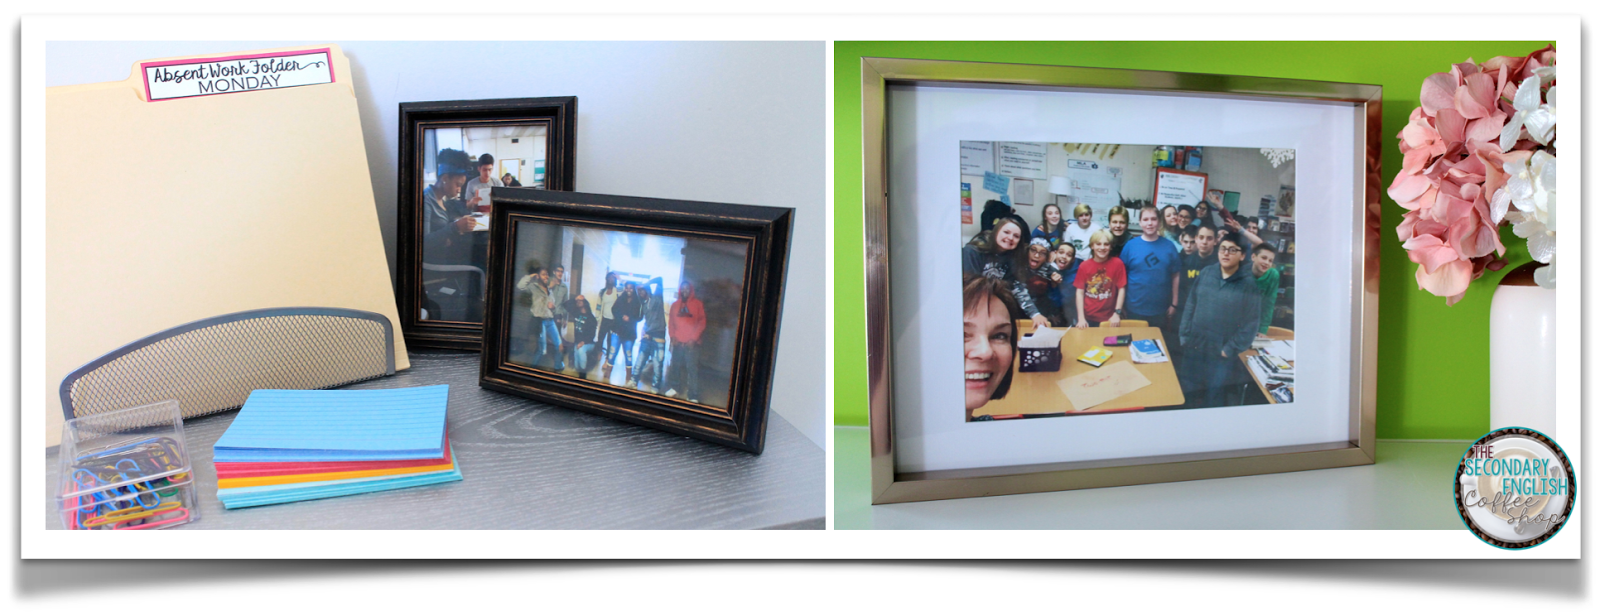 Build classroom community by keeping framed pictures of students within the classroom!